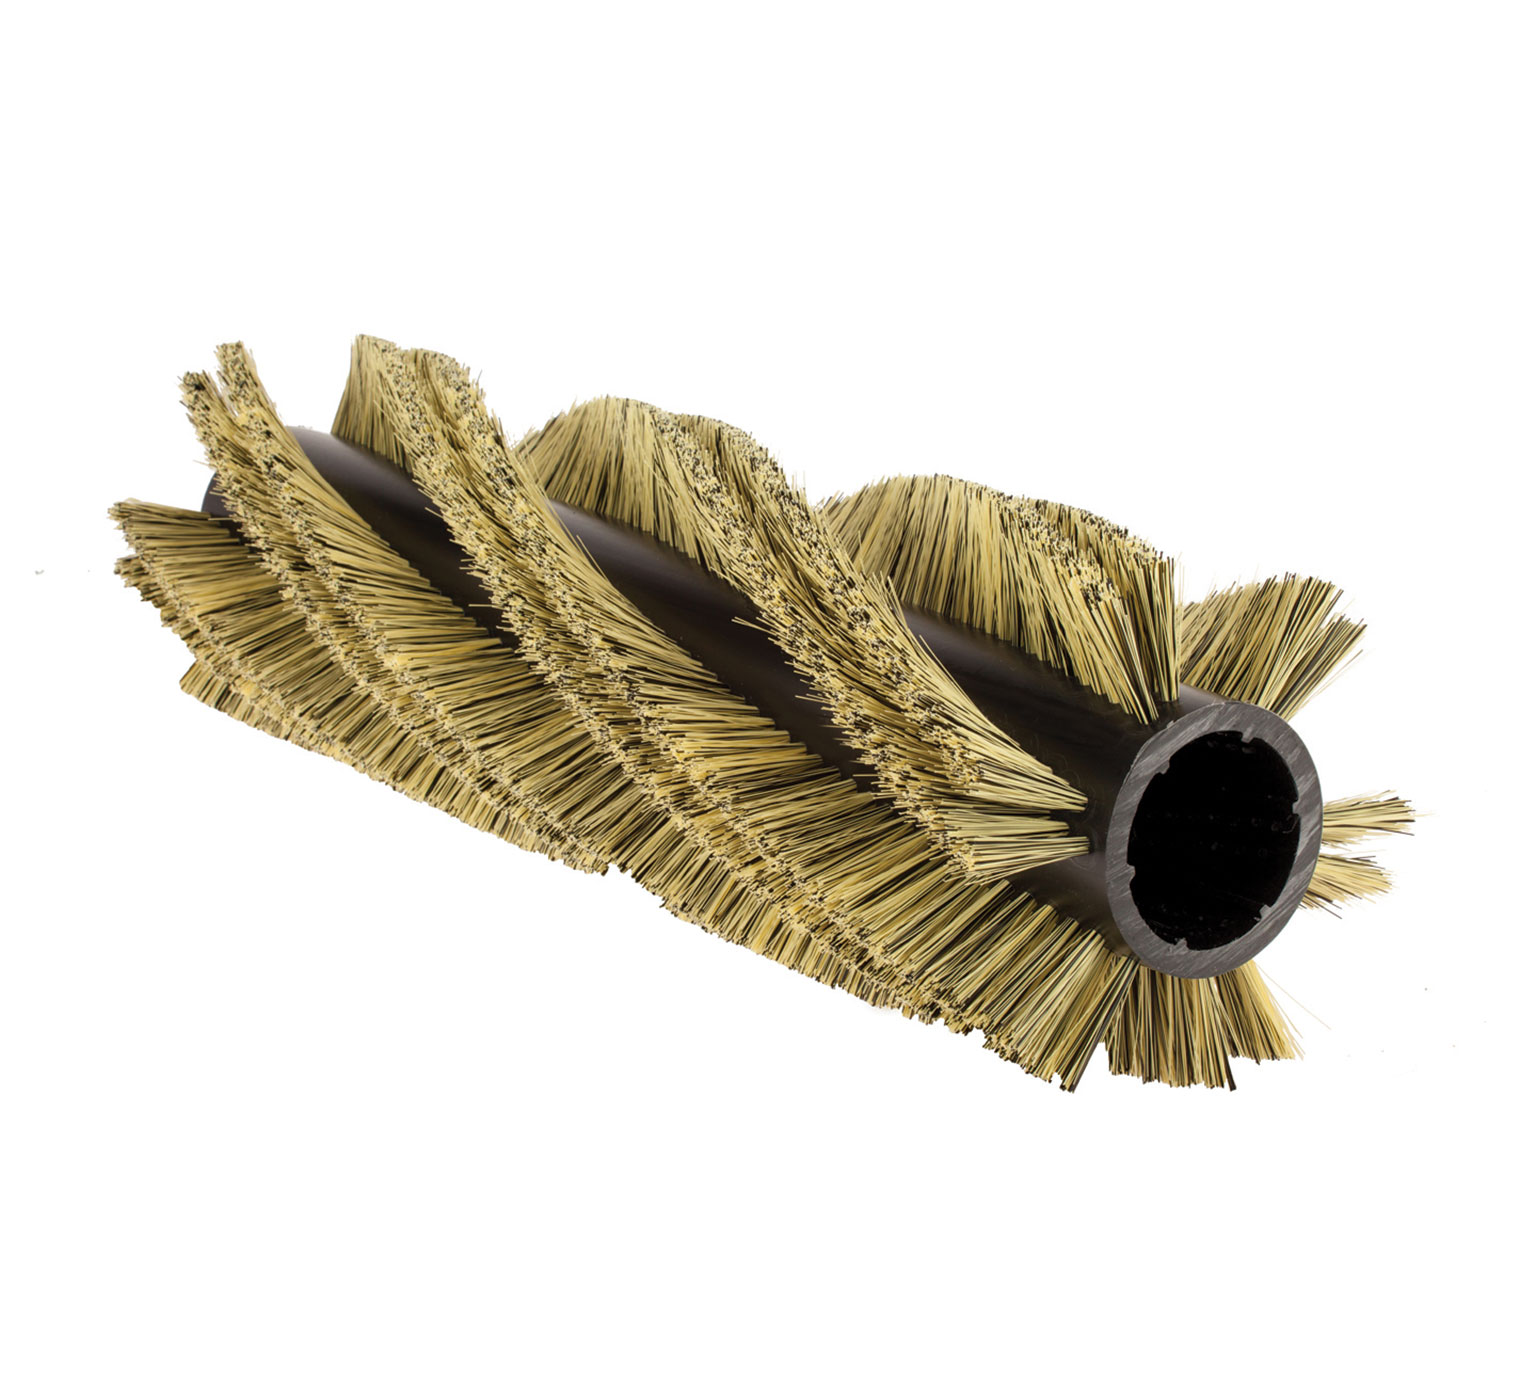 385935 Polypropylene Double Row Brush – 36 x 10 in alt 1